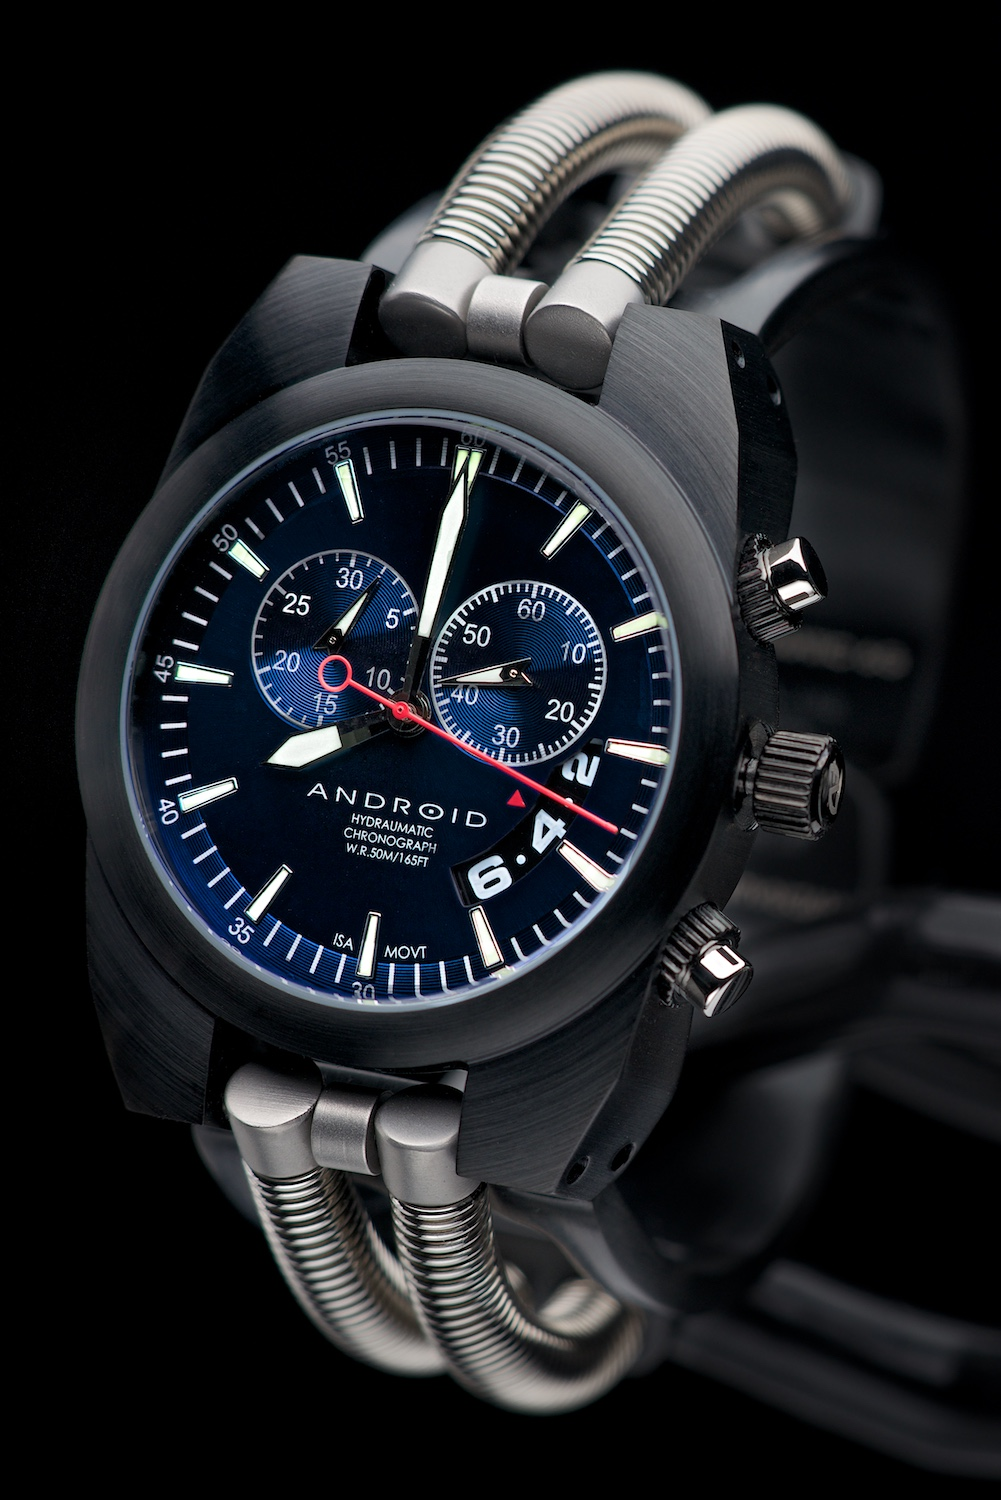 Android Hydraumatic Chronograph on black background by Bret Doss Commercial Product Photography Seattle